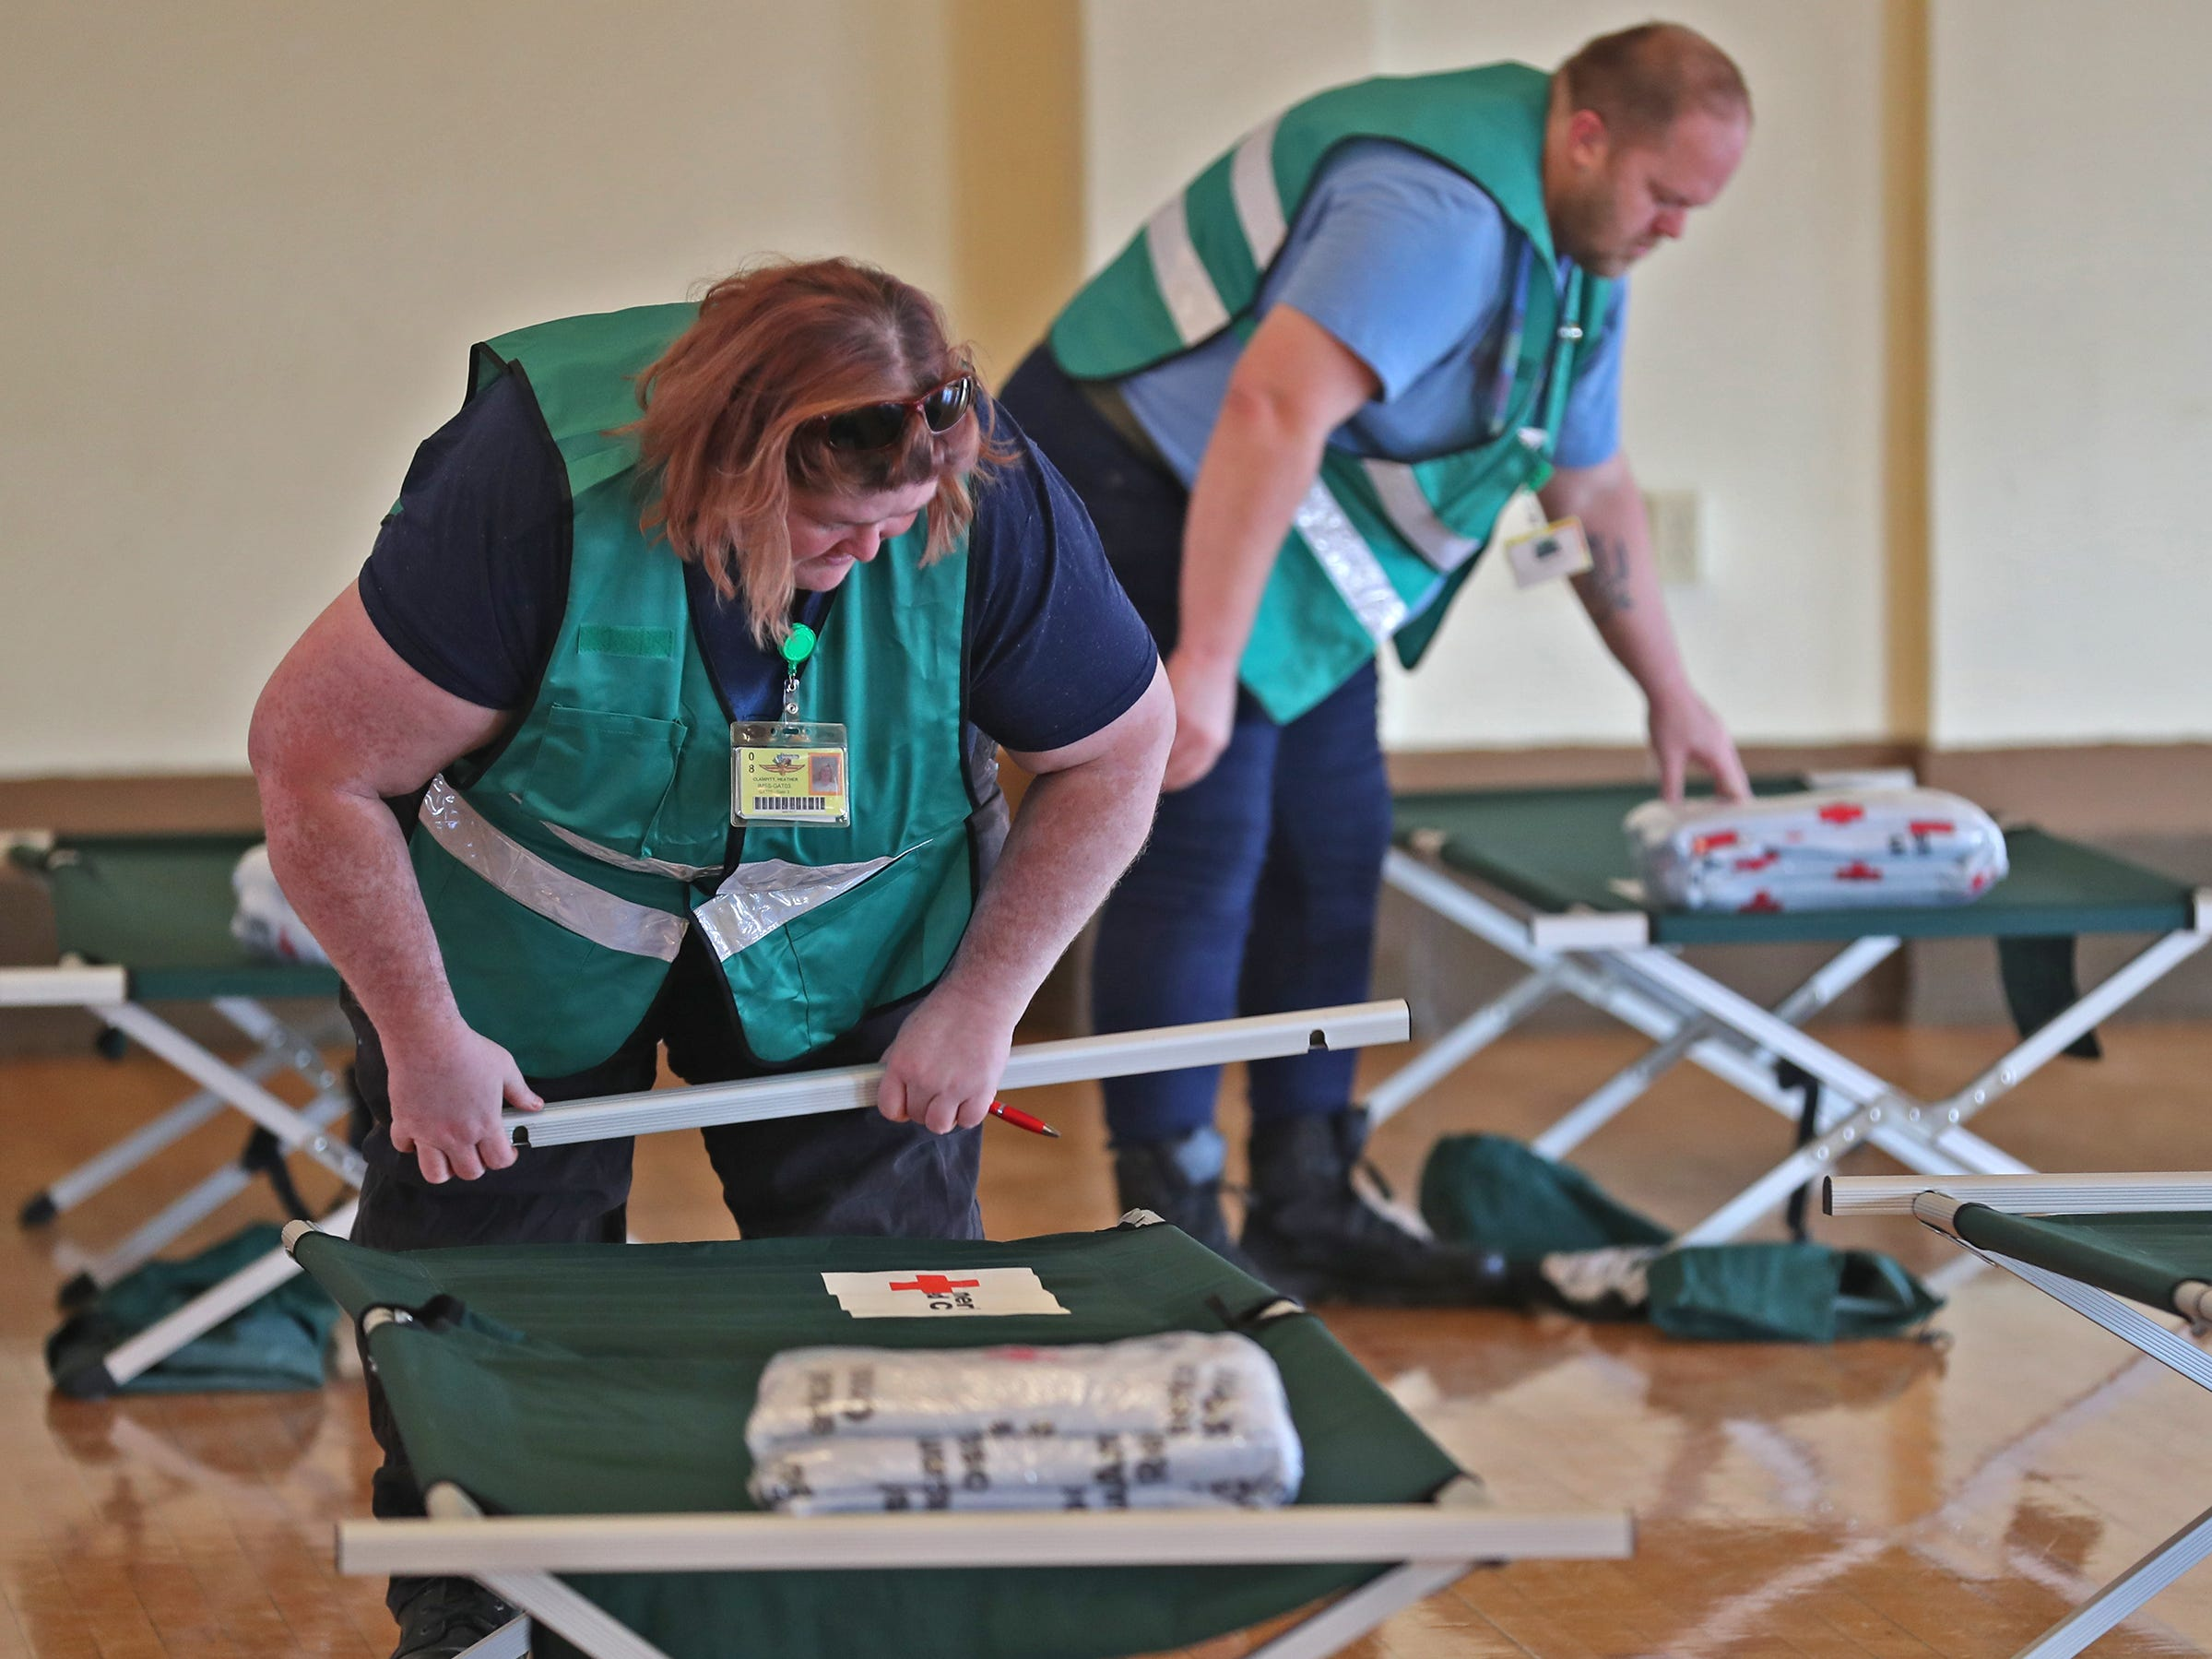 Heather Clampitt, left, and Joseph Clampitt, volunteers with CERT, fix cots at a Community Emergency Response 